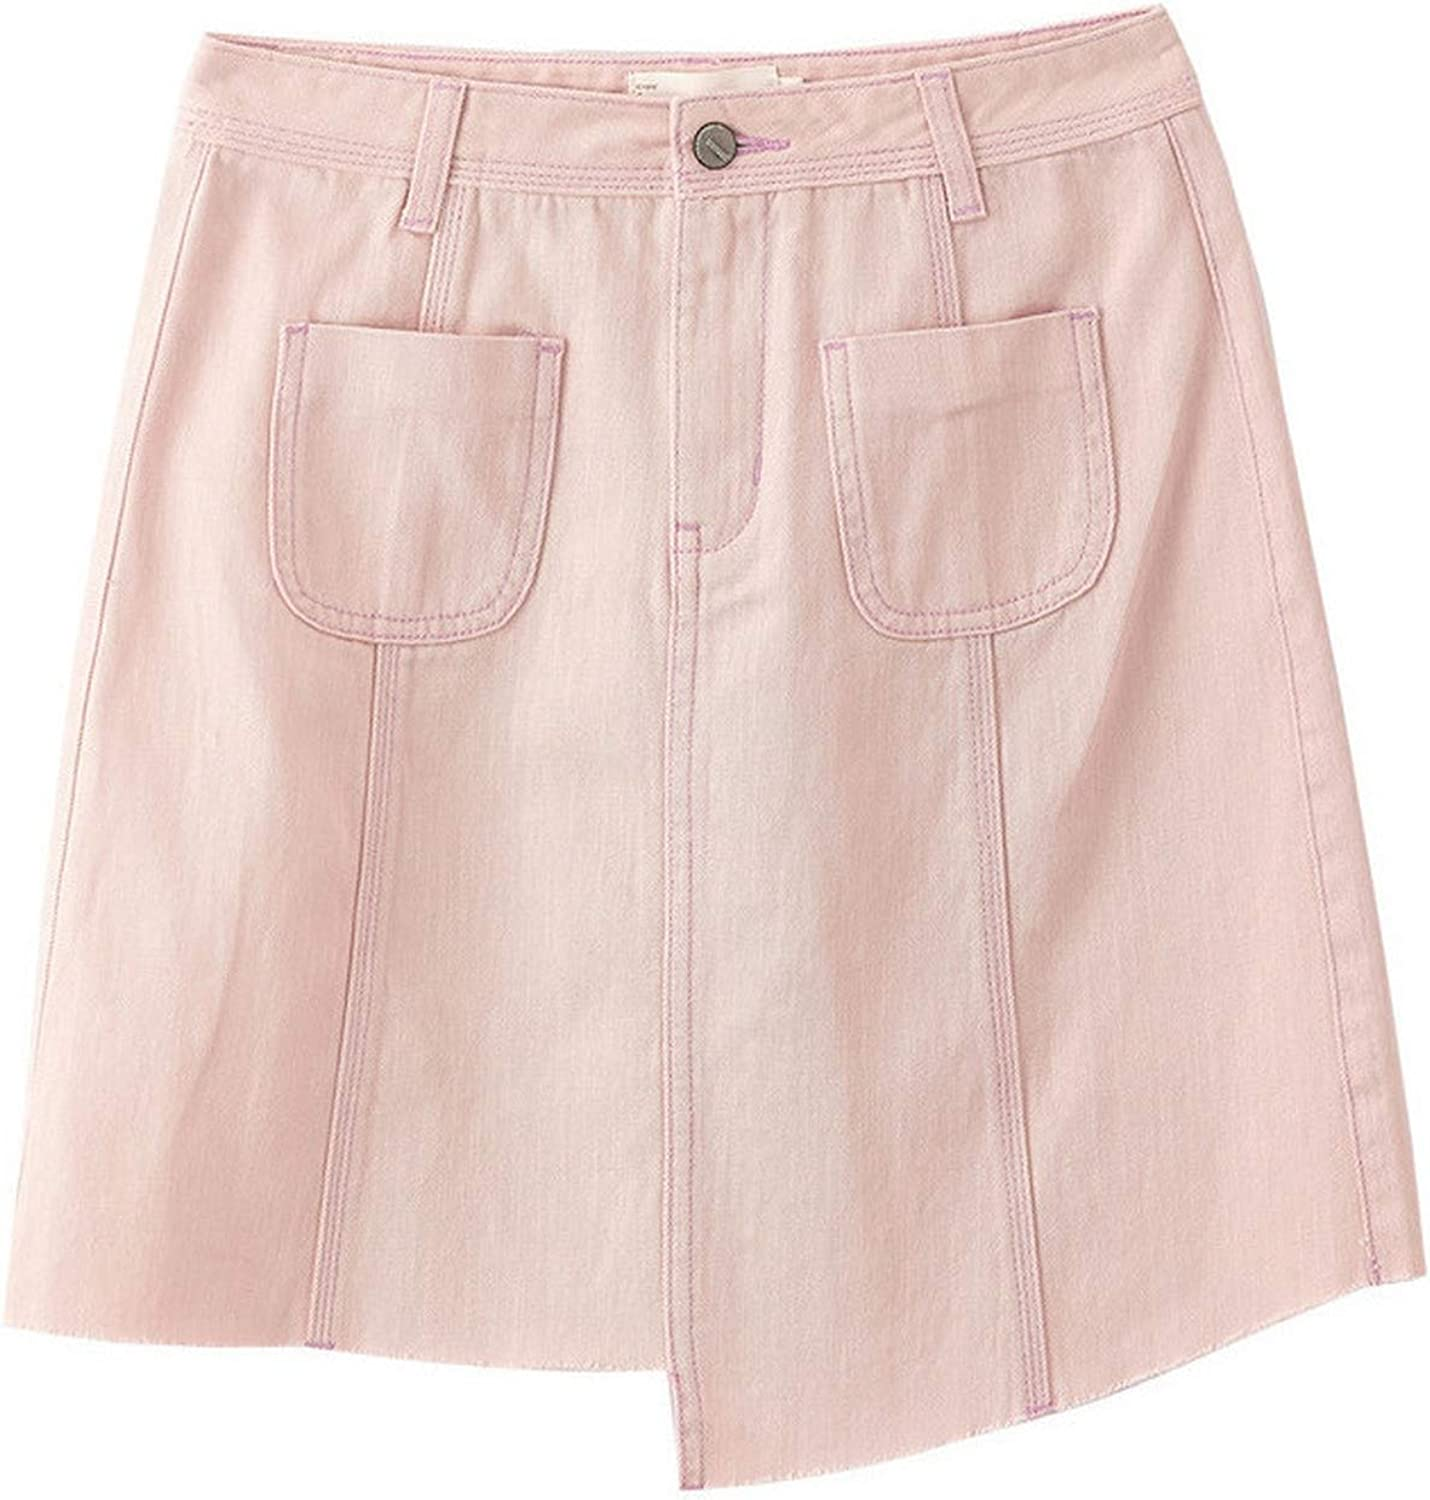 2019 Arrival High Waist Slim Korean Fashion Casual Student Style All Matched Aline Women Short Denim Skirt,Pink,L